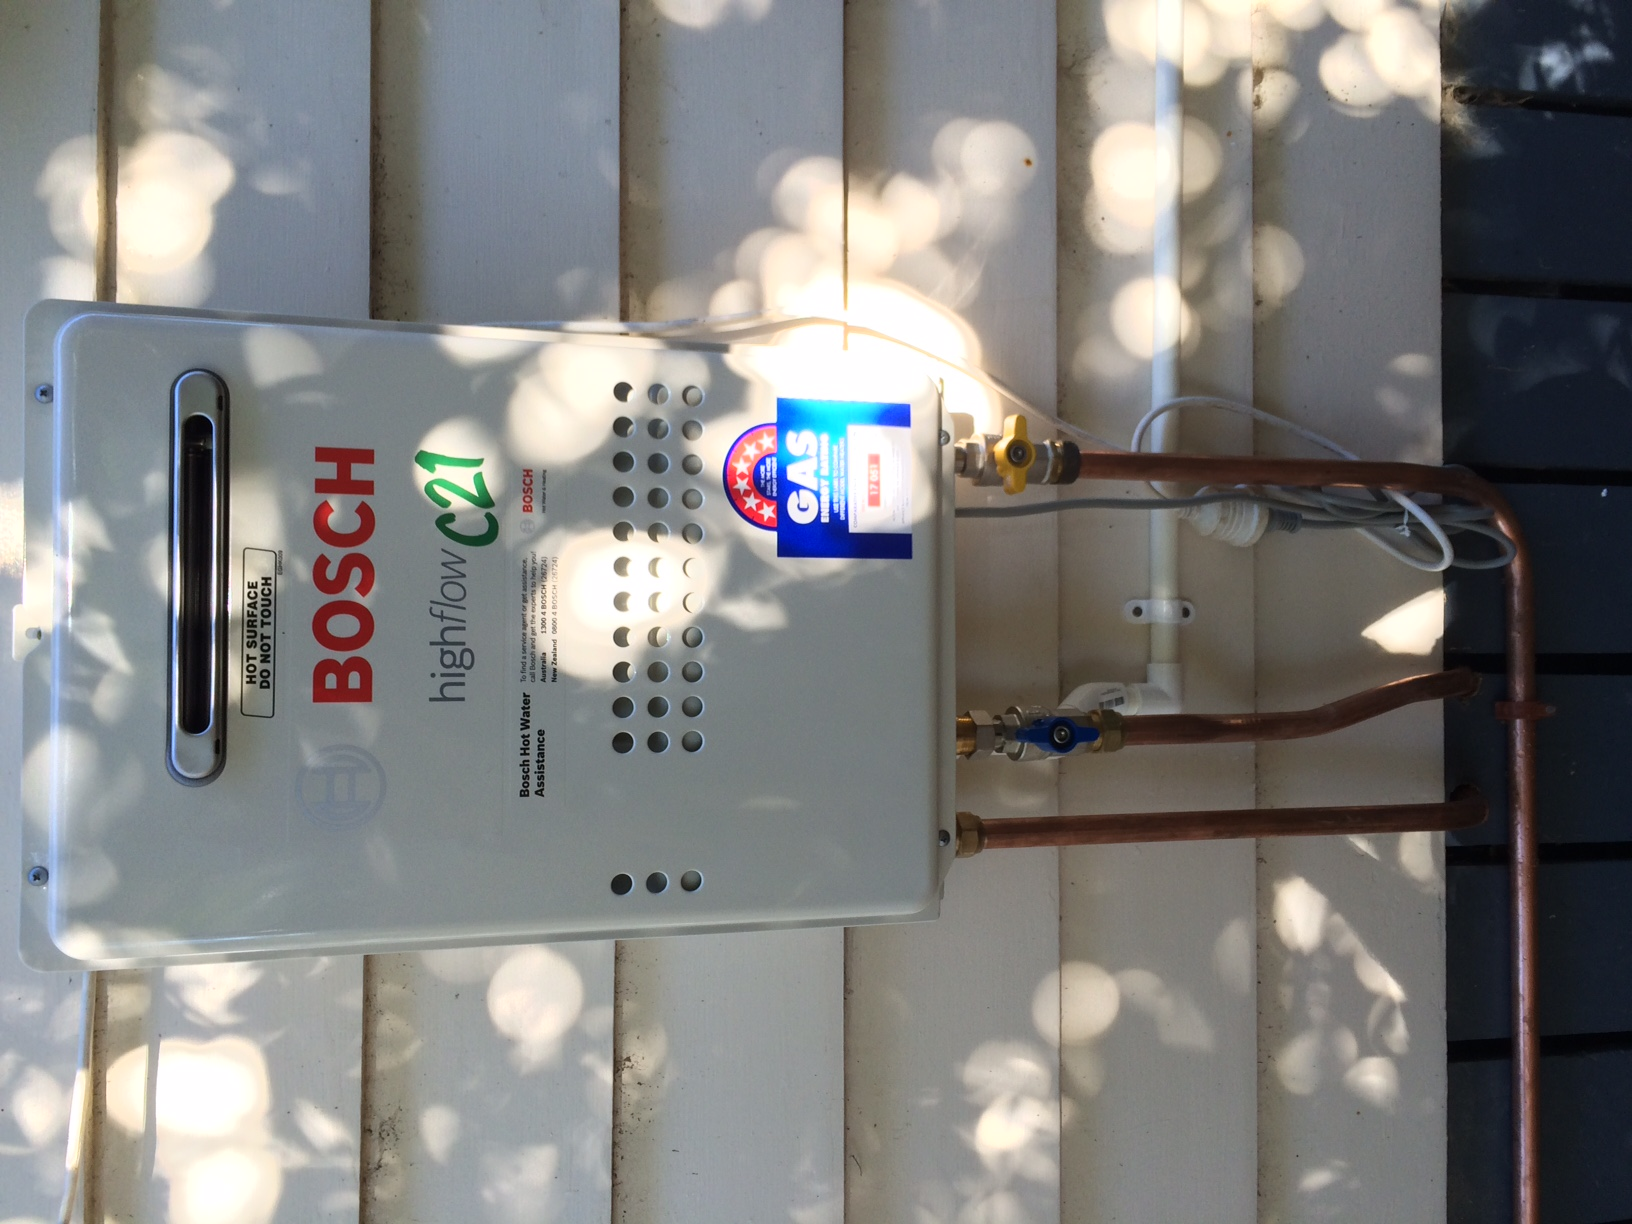 Condensing Technology With Bosch Highflow C21 Water